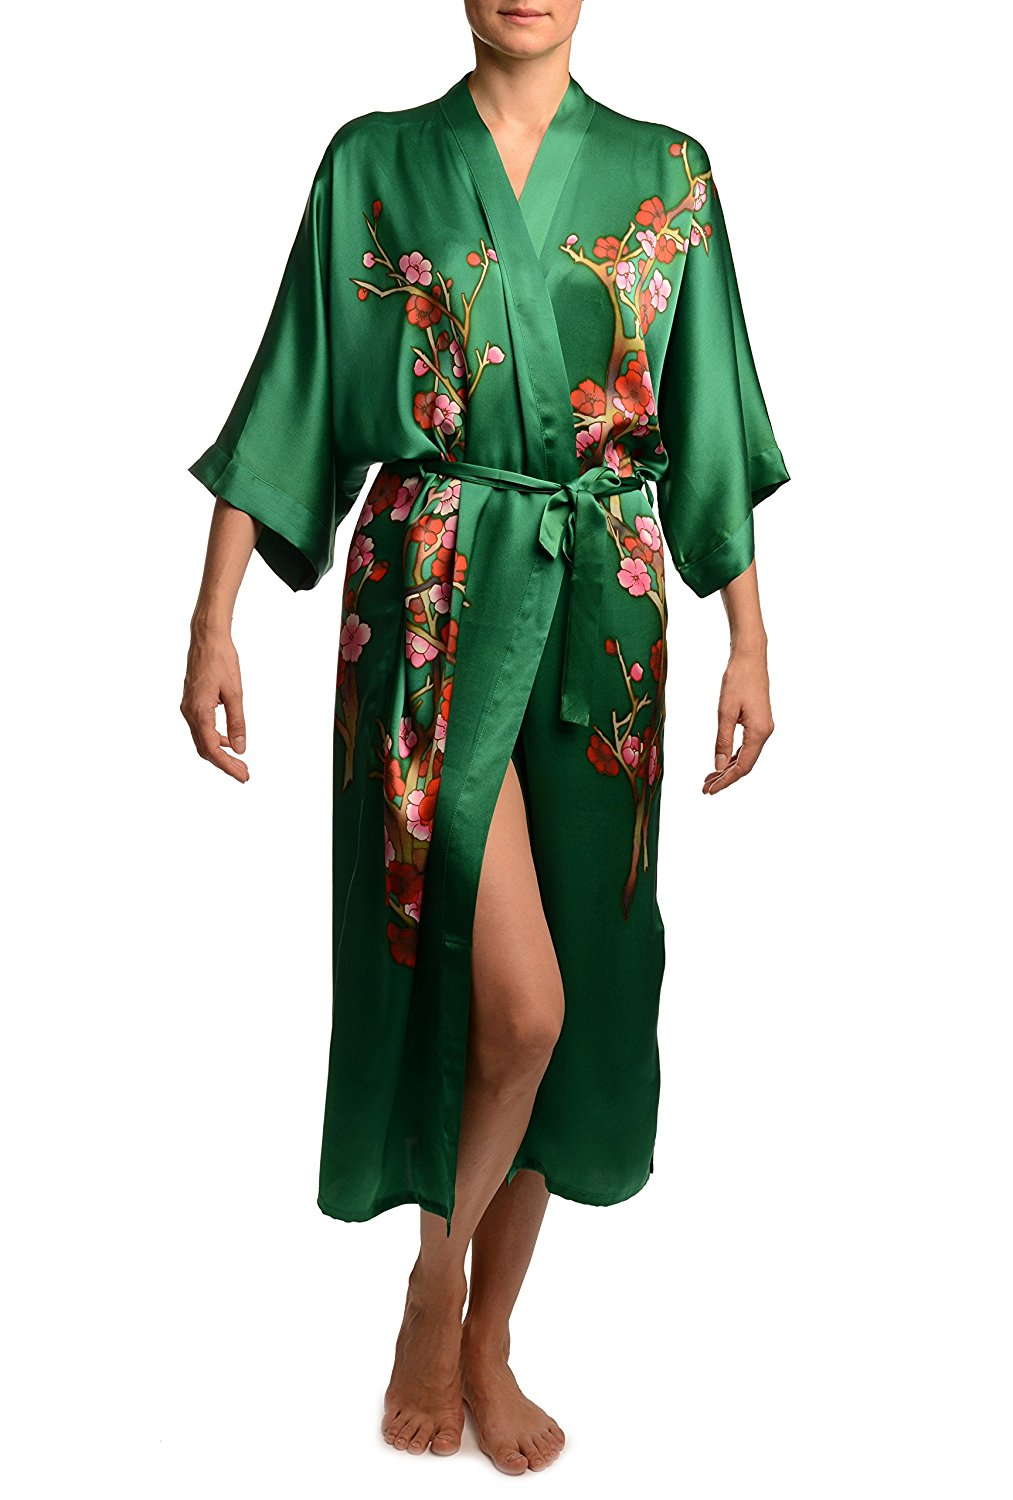 88629a902057 Get Quotations · Green with Sakura Bloom Luxurious Silk Dressing Gown (Robe)  - Dressing Gown